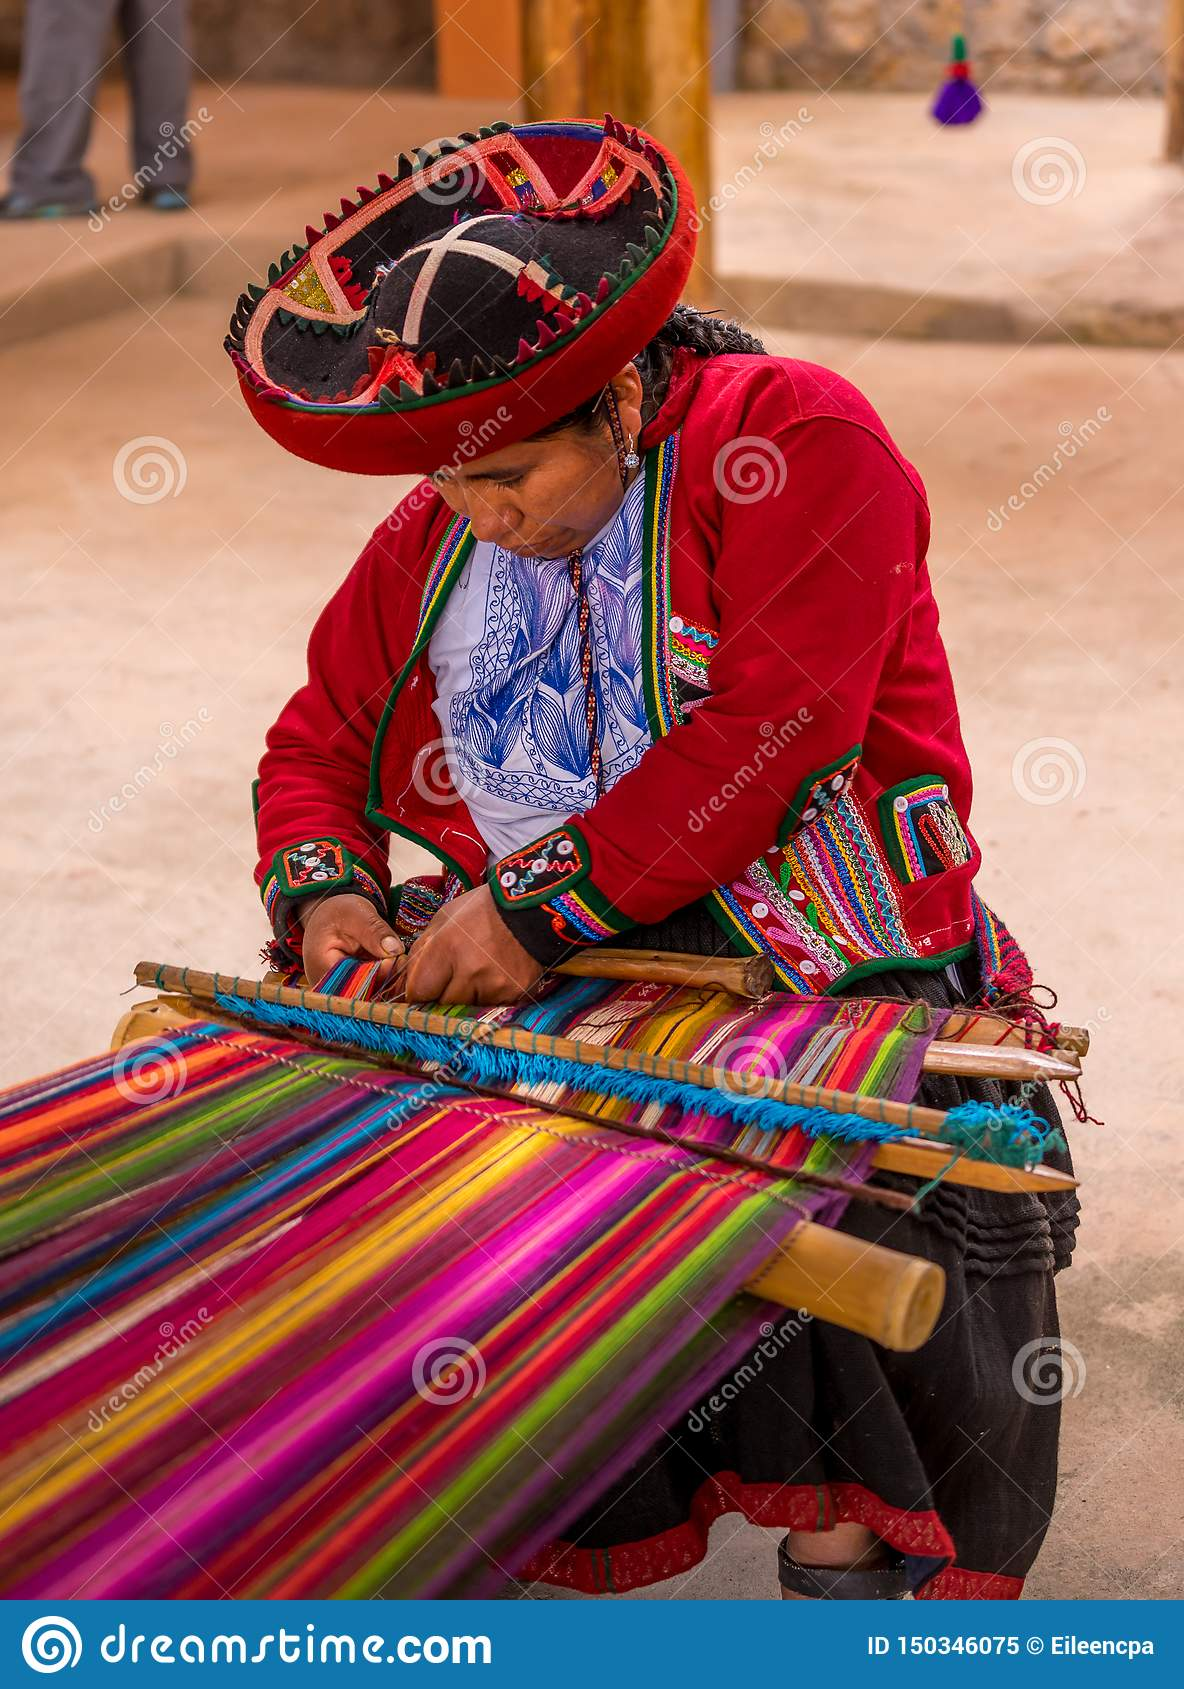 Peruvian woman working on traditional handmade wool